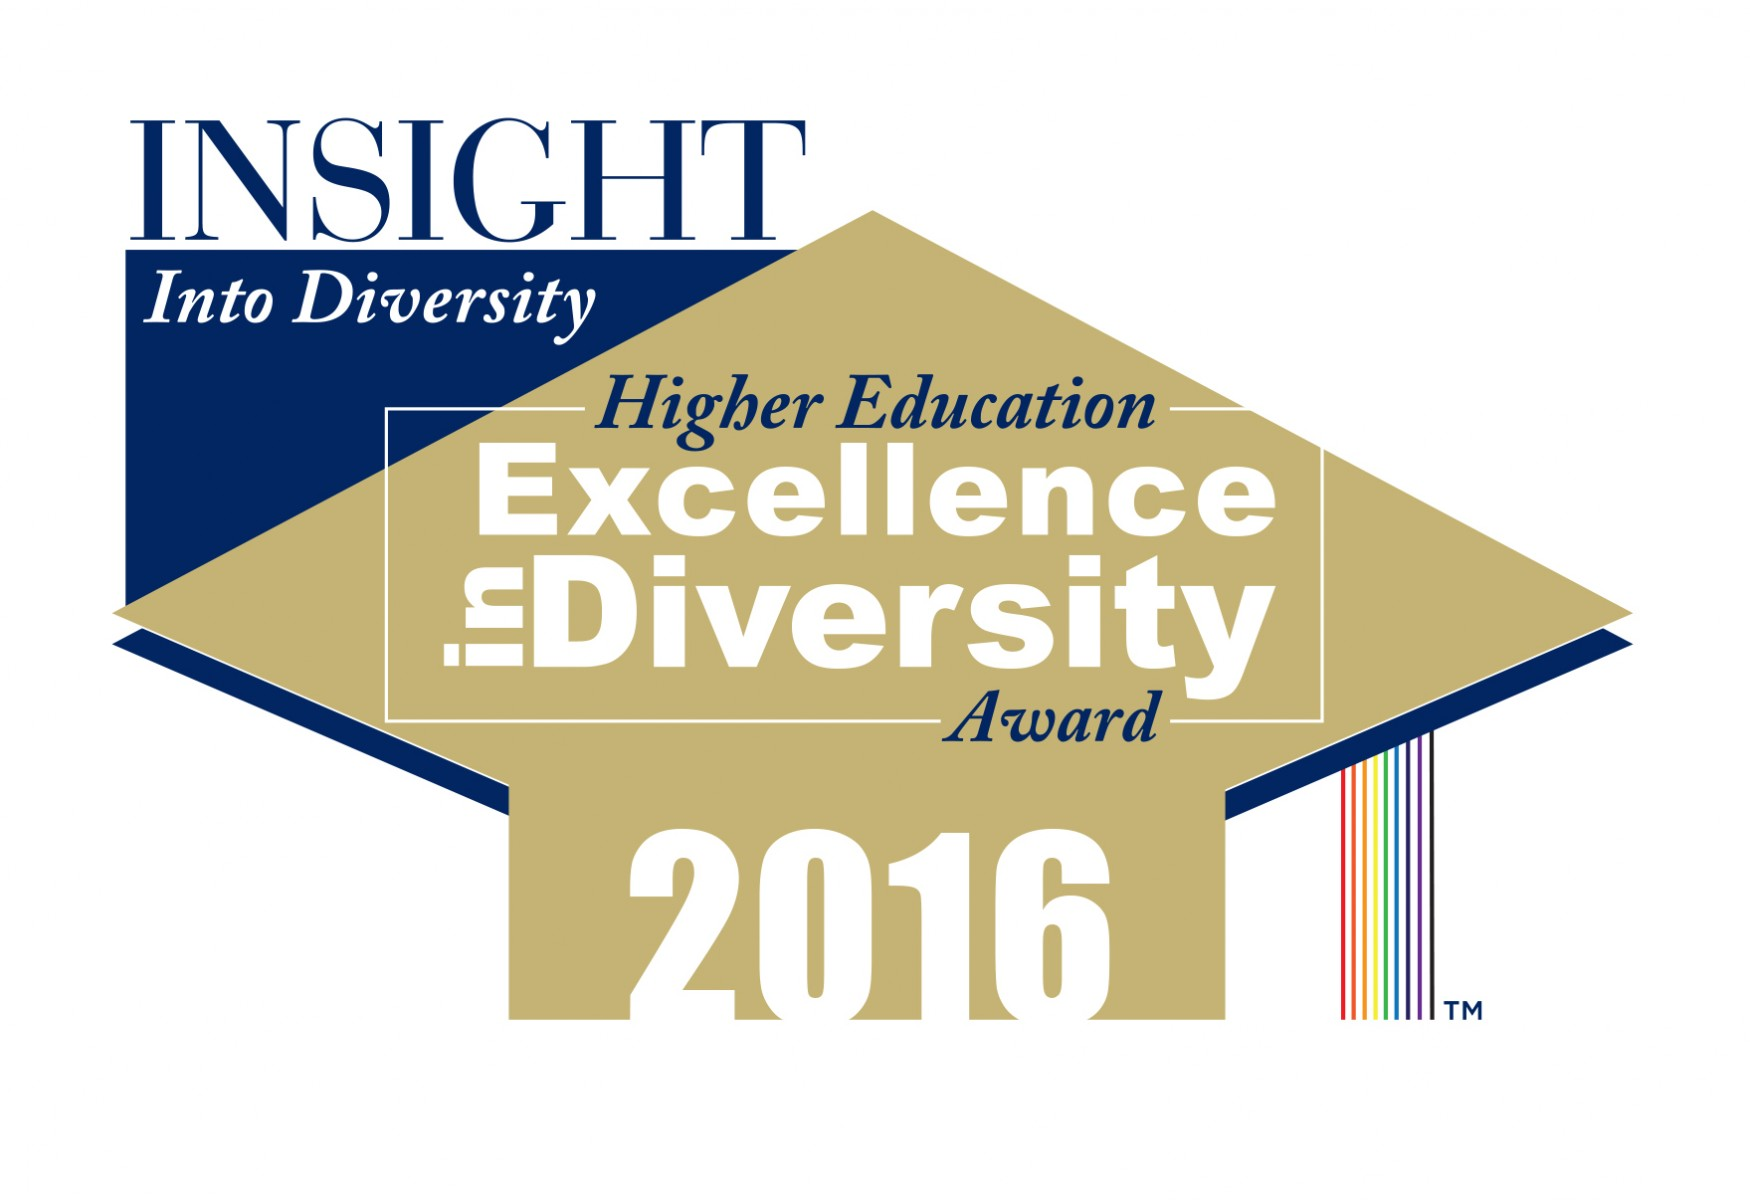 2016 INSIGHT Into Diversity HEED Award